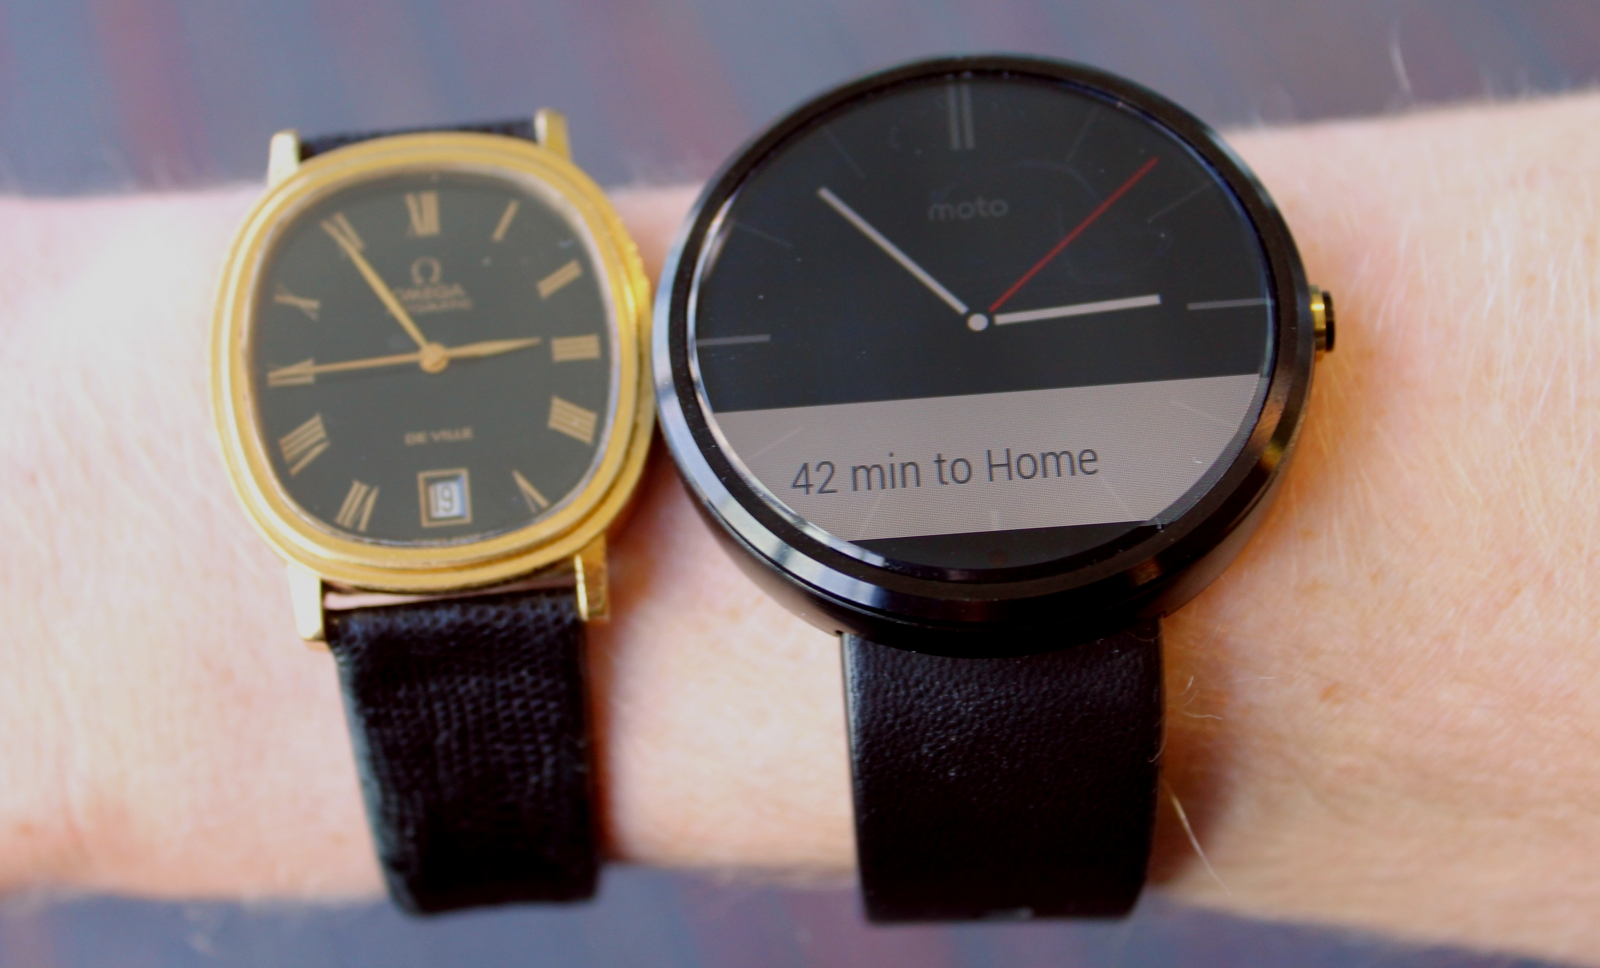 New Update to Motorola Moto 360 Smartwatch brings New Watch Faces, Along With Health, Fitness Monitoring Functionality: Check out Now